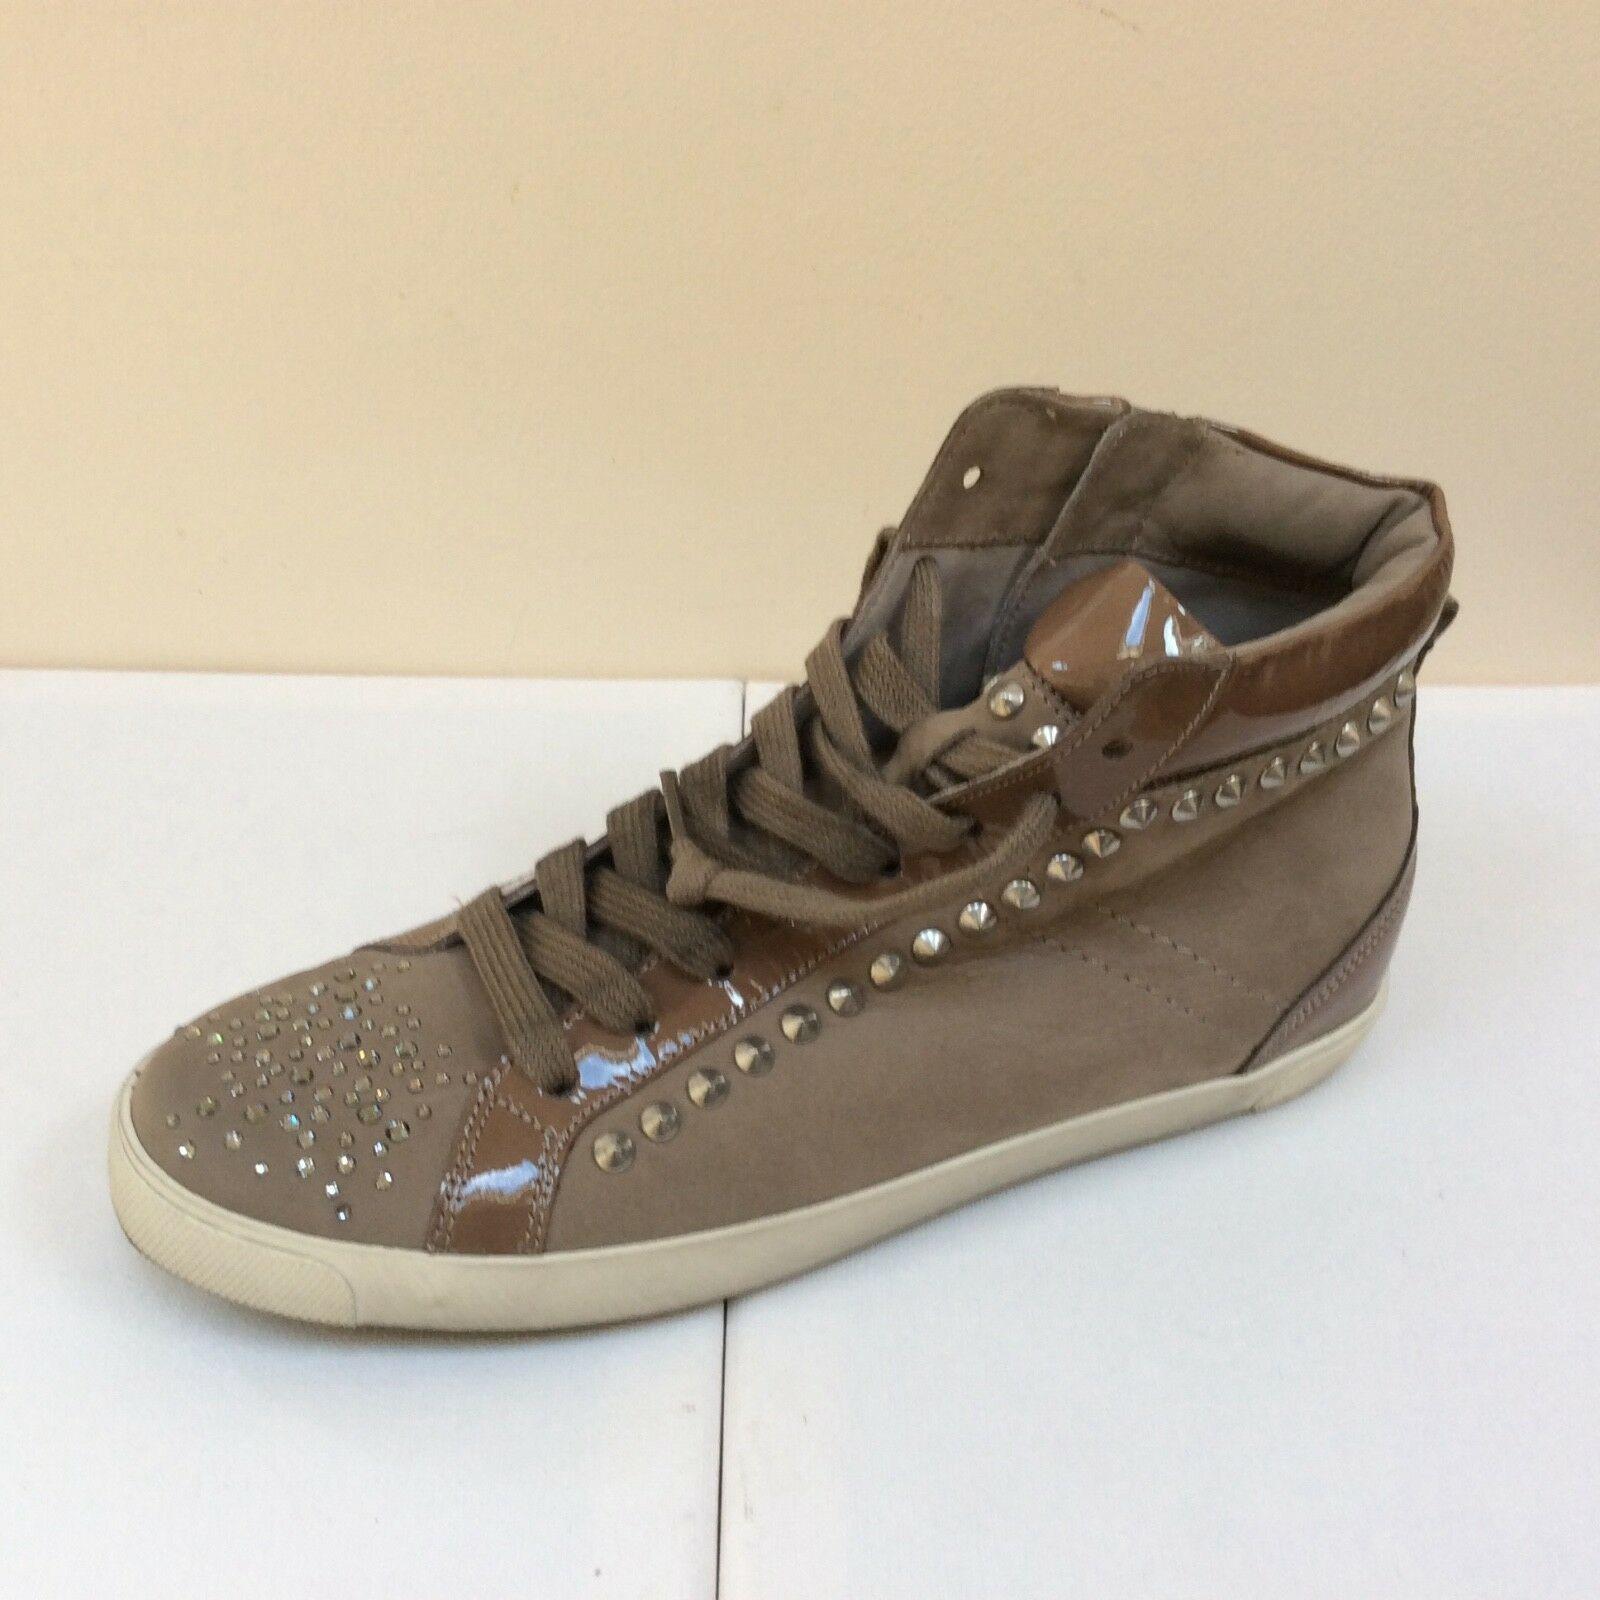 K&S taupe 38, Leder trainers with Swarovski Elements, UK 5/EU 38, taupe   BNWB f5476e